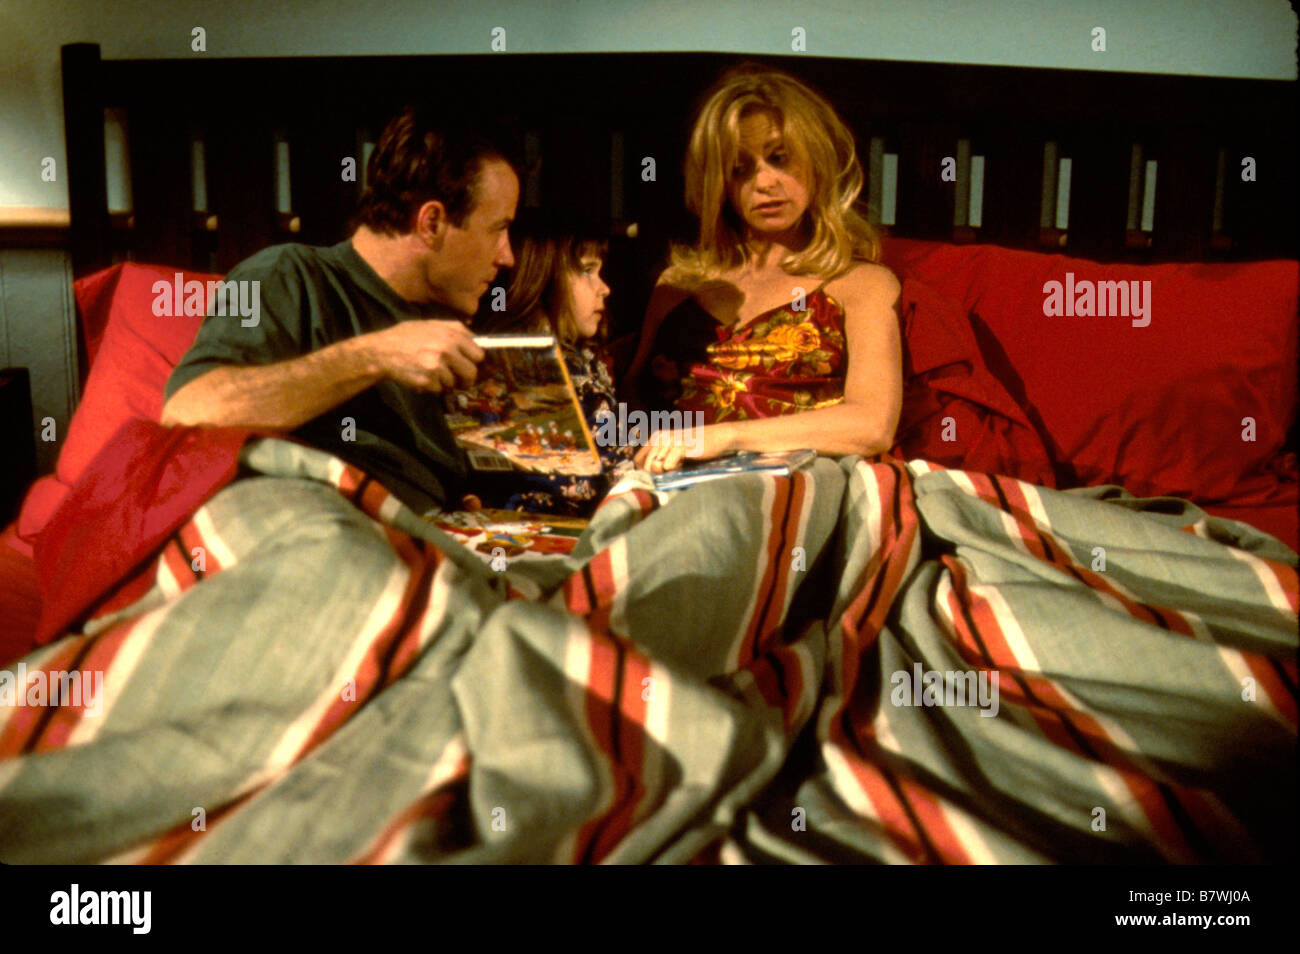 Trahie Deceived Année 1991 usa Goldie Hawn John Heard Ashley Peldon Réalisateur Damian Harris - Stock Image